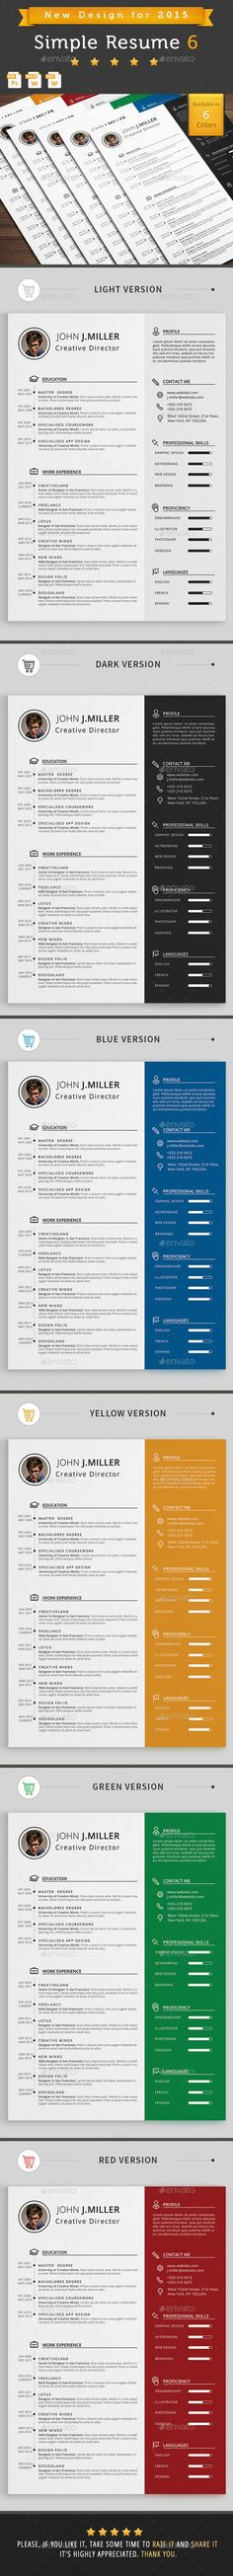 points to cover in a cover letter%0A Minimal Resume  Portfolio    Cover Letter Template Cover letter  resume  portfolio